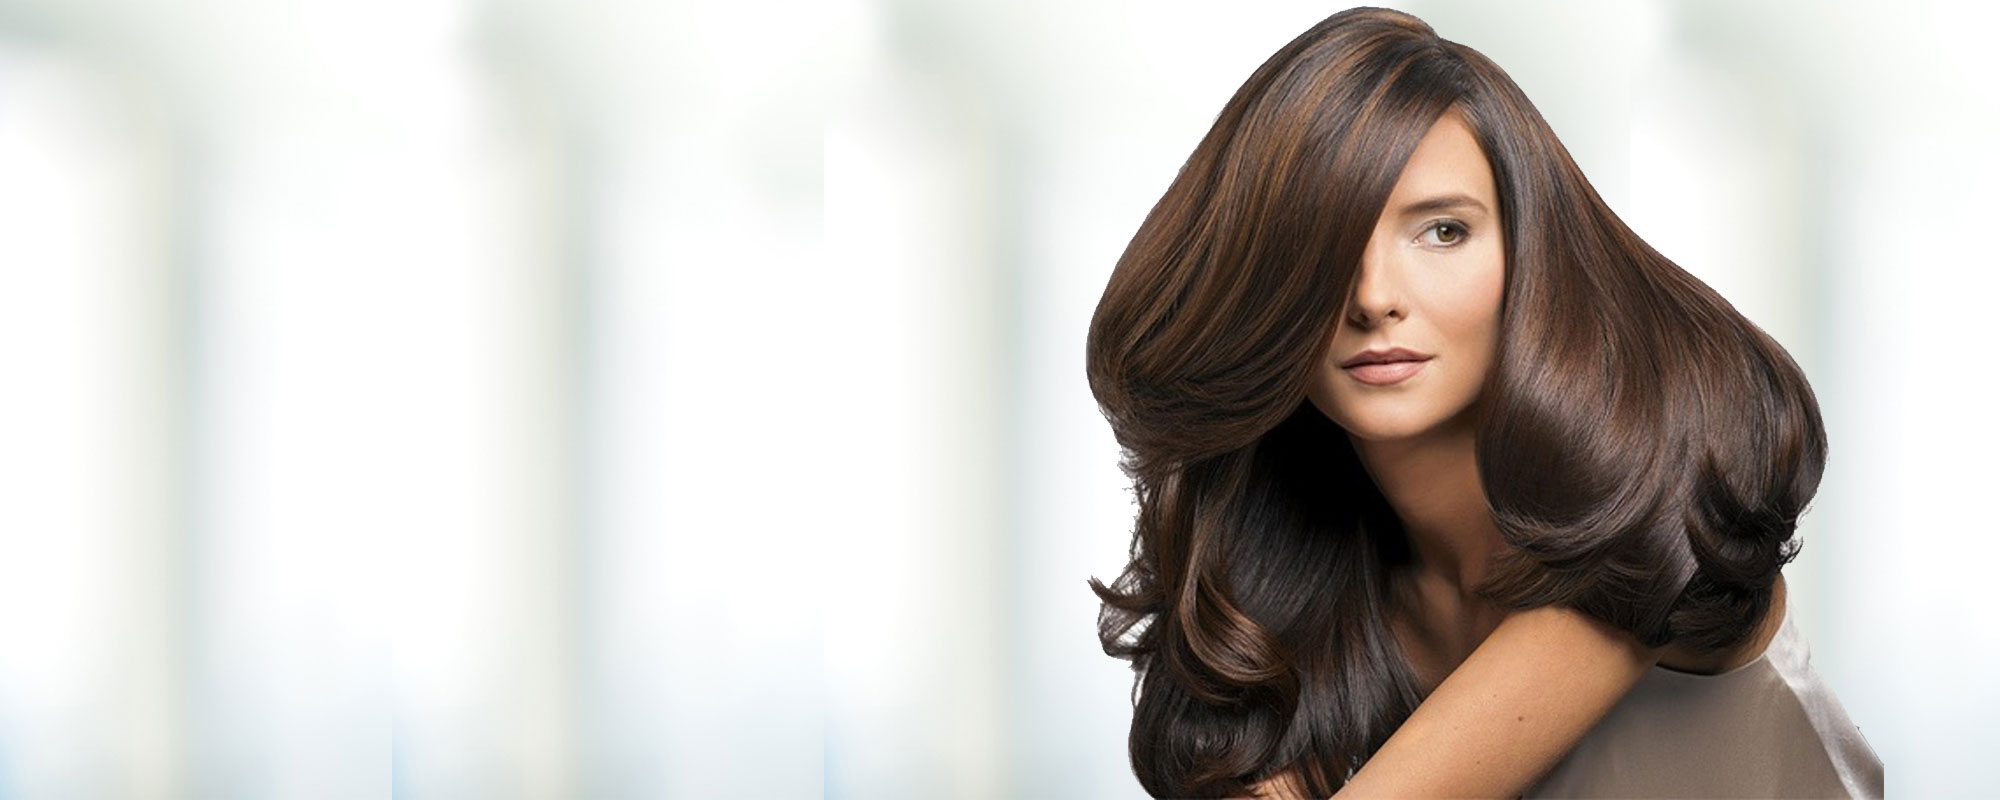 Achieve<br/> <span>STUNNING HAIR</span><br/>Health and Beauty